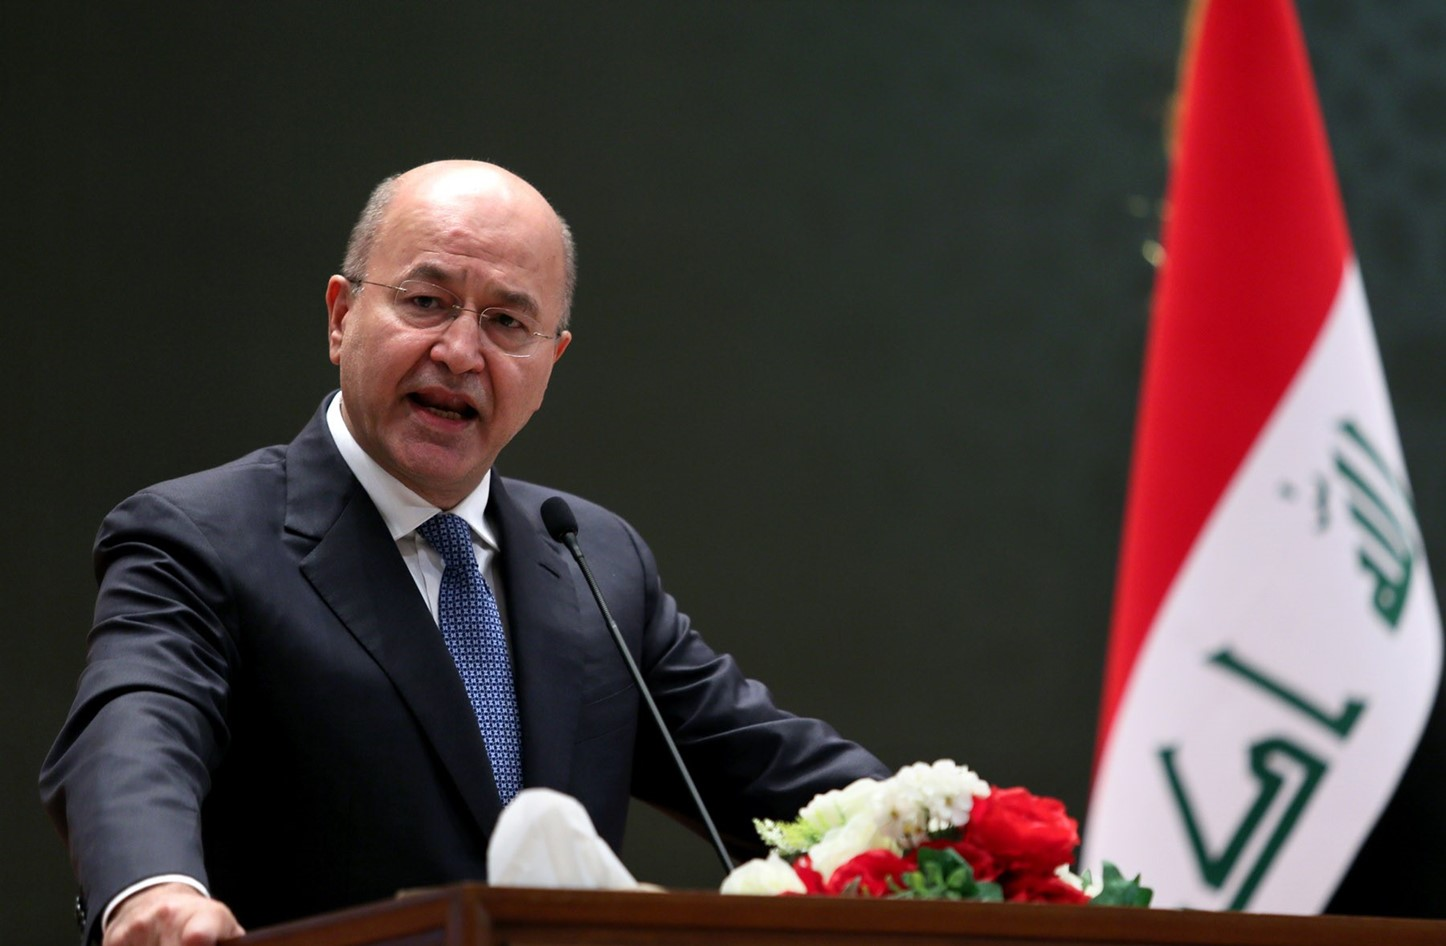 The Iraqi President calls for coordination with the United Nations on the upcoming elections INAF_20210420012035334.jpg?404=d&h=946&w=1446&scale=both&mode=crop&c.focus=faces&c.finalmode=crop&f.threshold=2,4&f